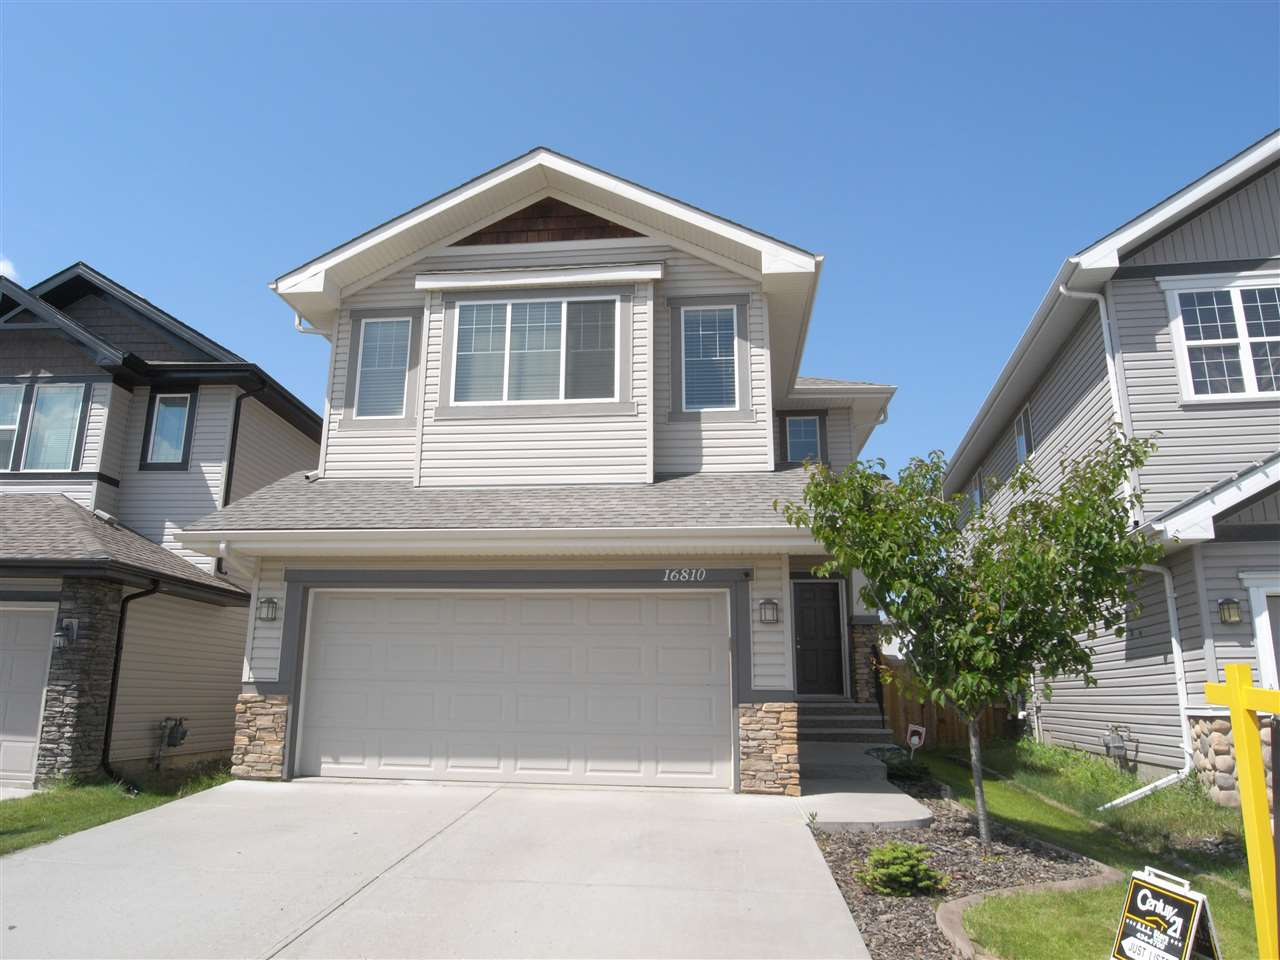 Main Photo: 16810 58A Street in Edmonton: Zone 03 House for sale : MLS® # E4072167